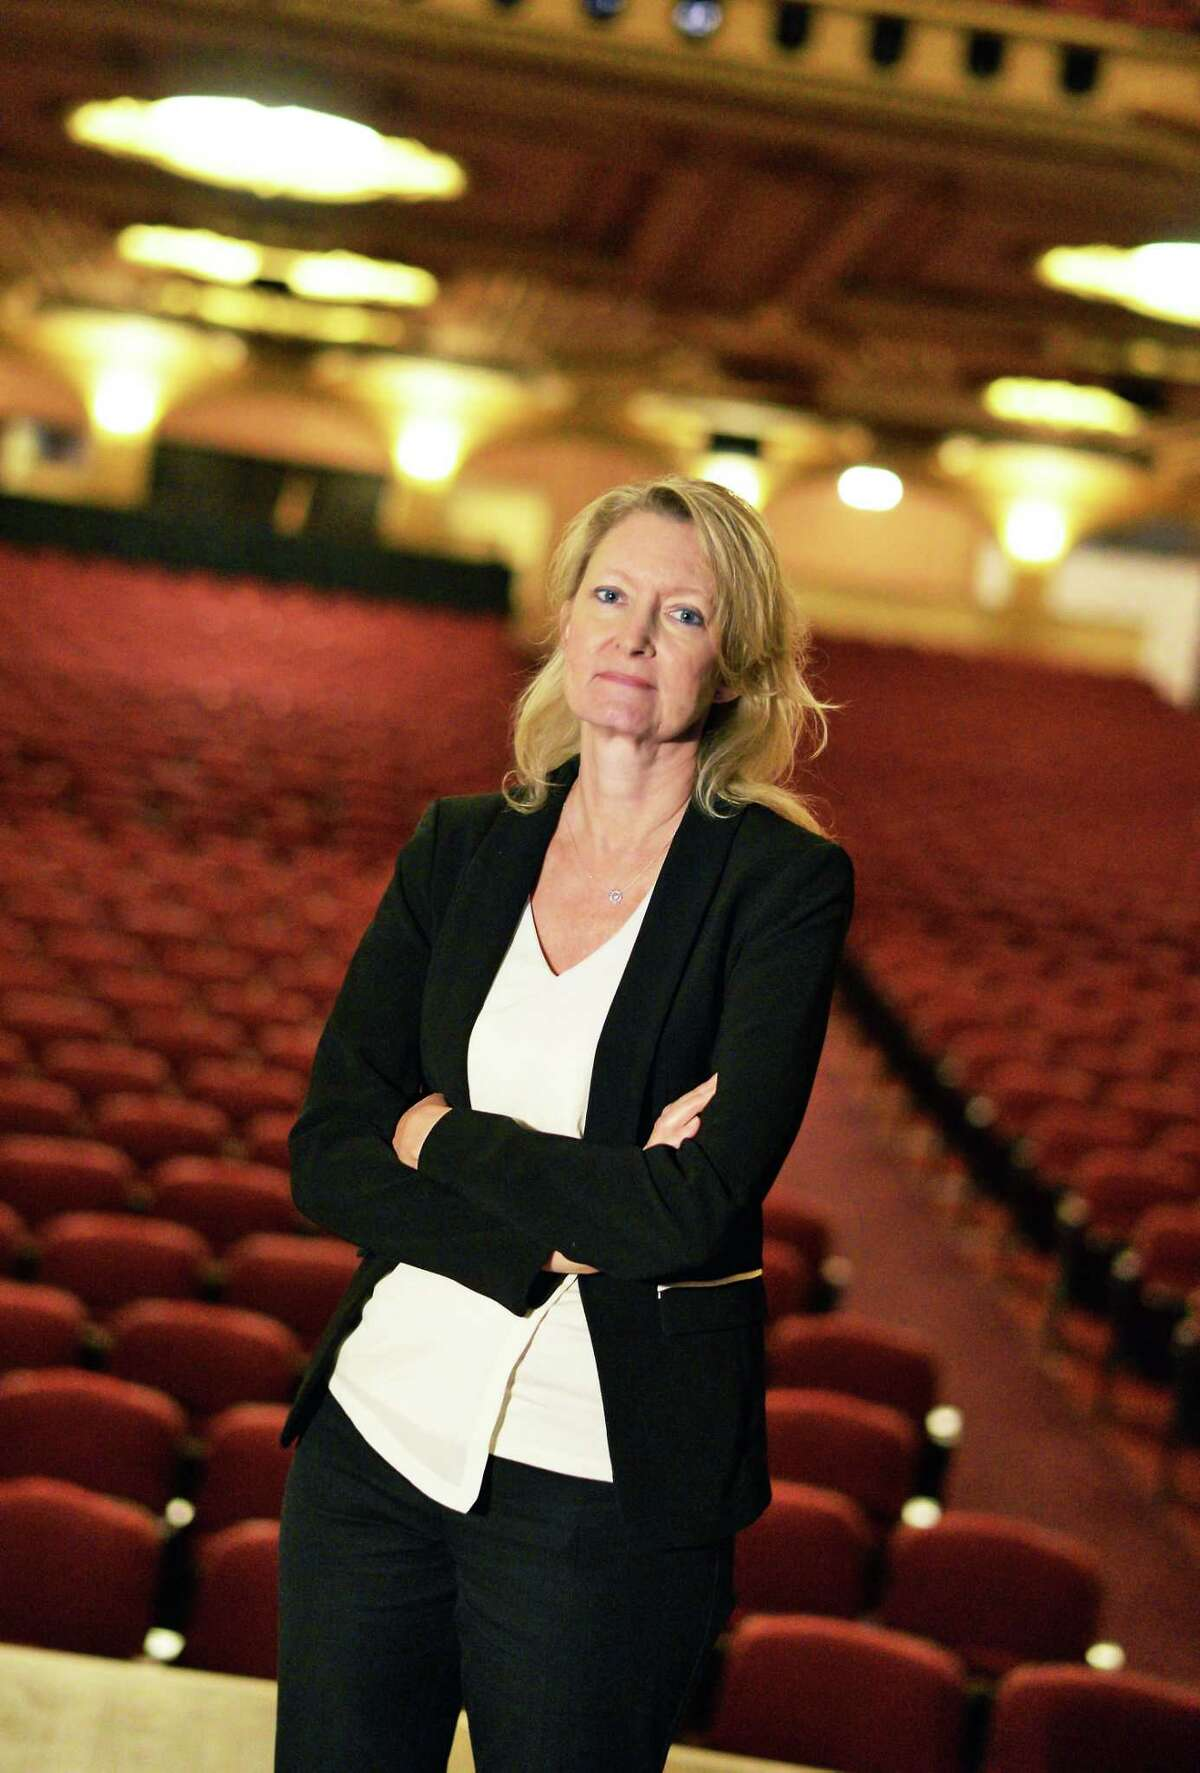 Holly Brown, executive director of the Palace Theatre, stands on stage Wednesday, May 25, 2016, at the Palace Theatre in Albany, N.Y. (John Carl D'Annibale / Times Union)